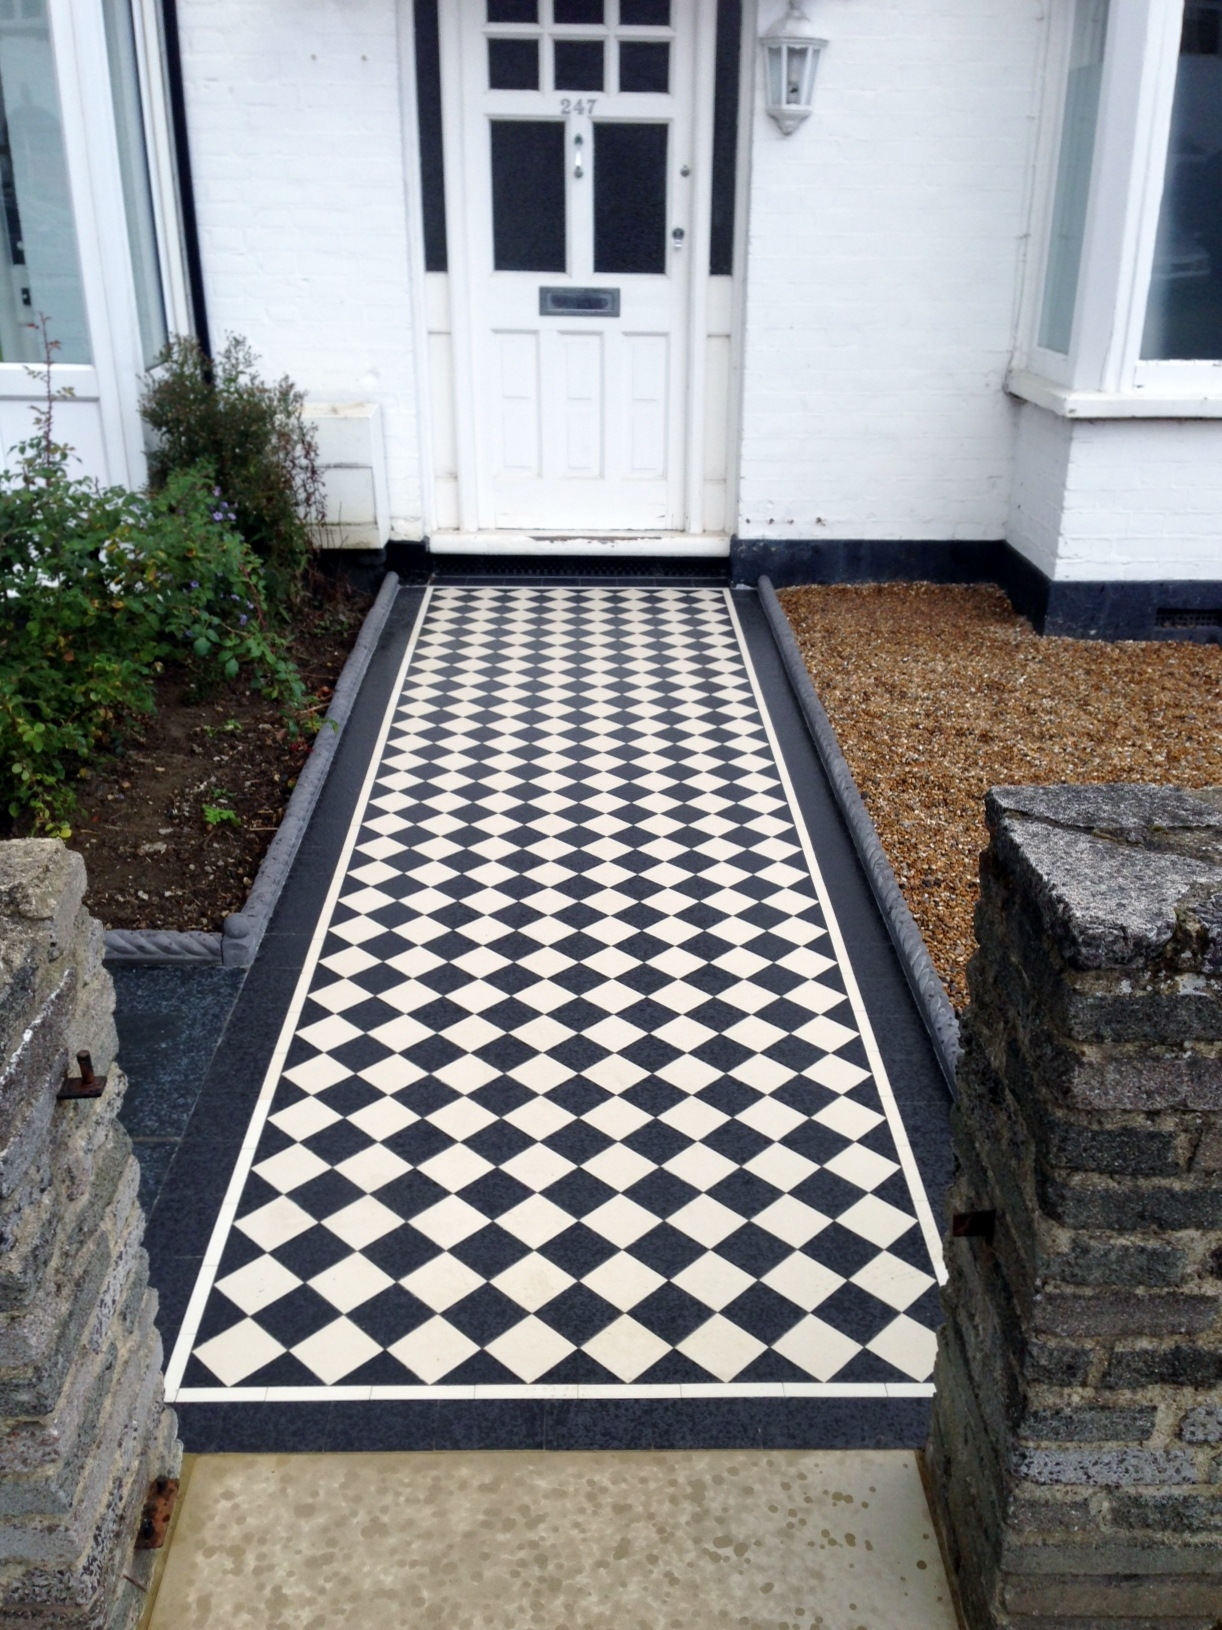 Victorian black and white mosaic tile garden path rope edge tile brockley lea catford london (9)